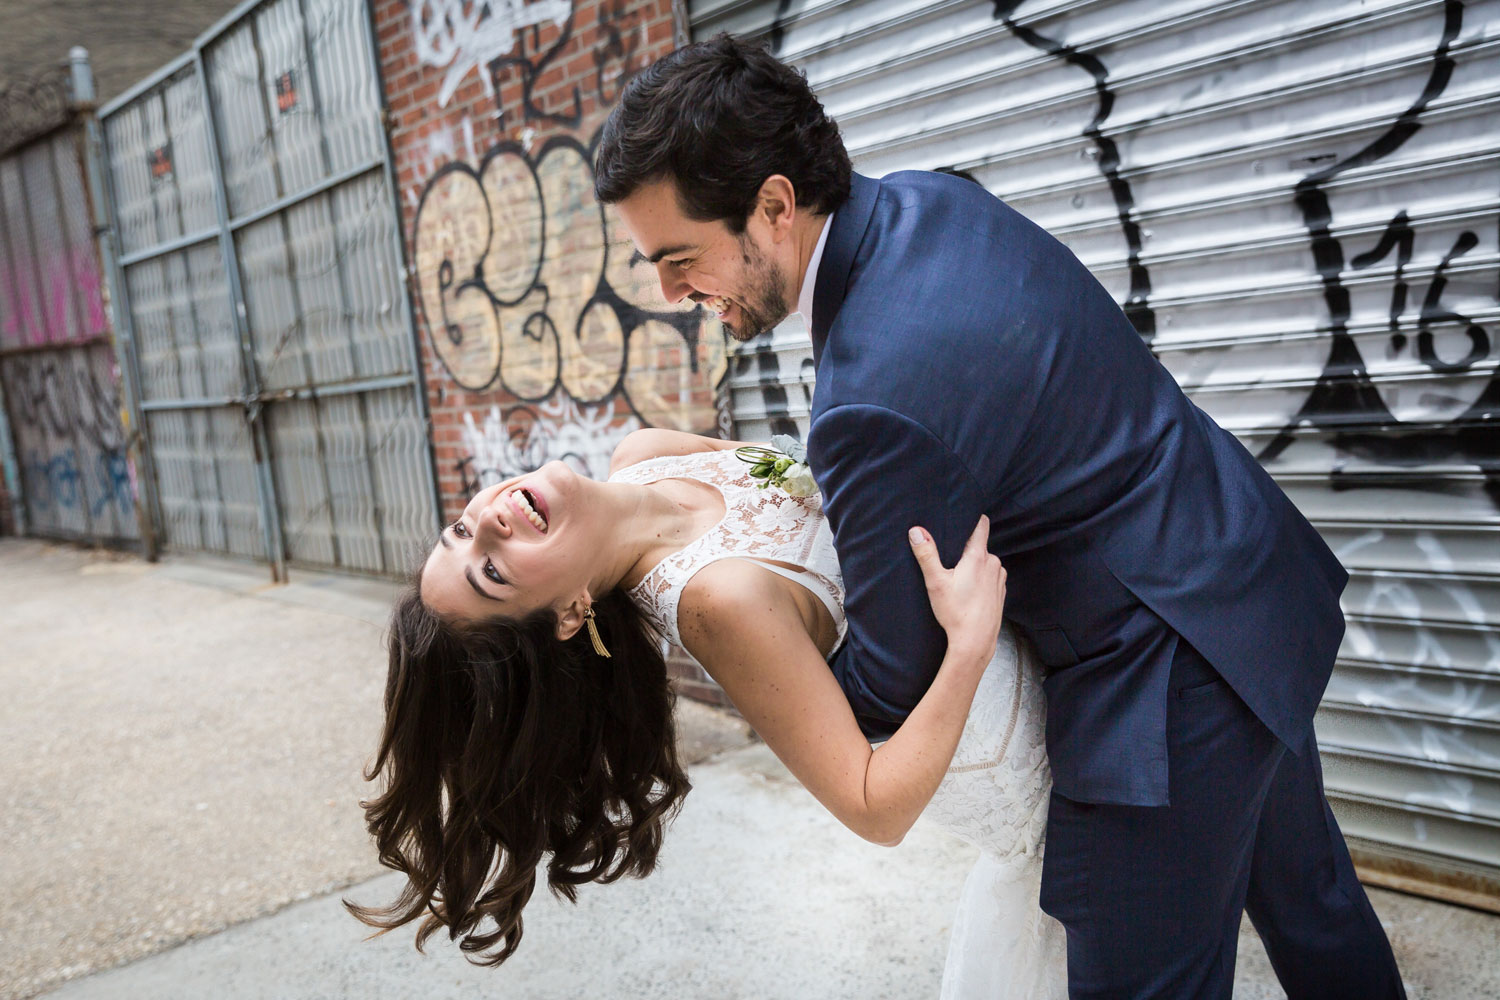 Bride and groom dancing on the street in NYC